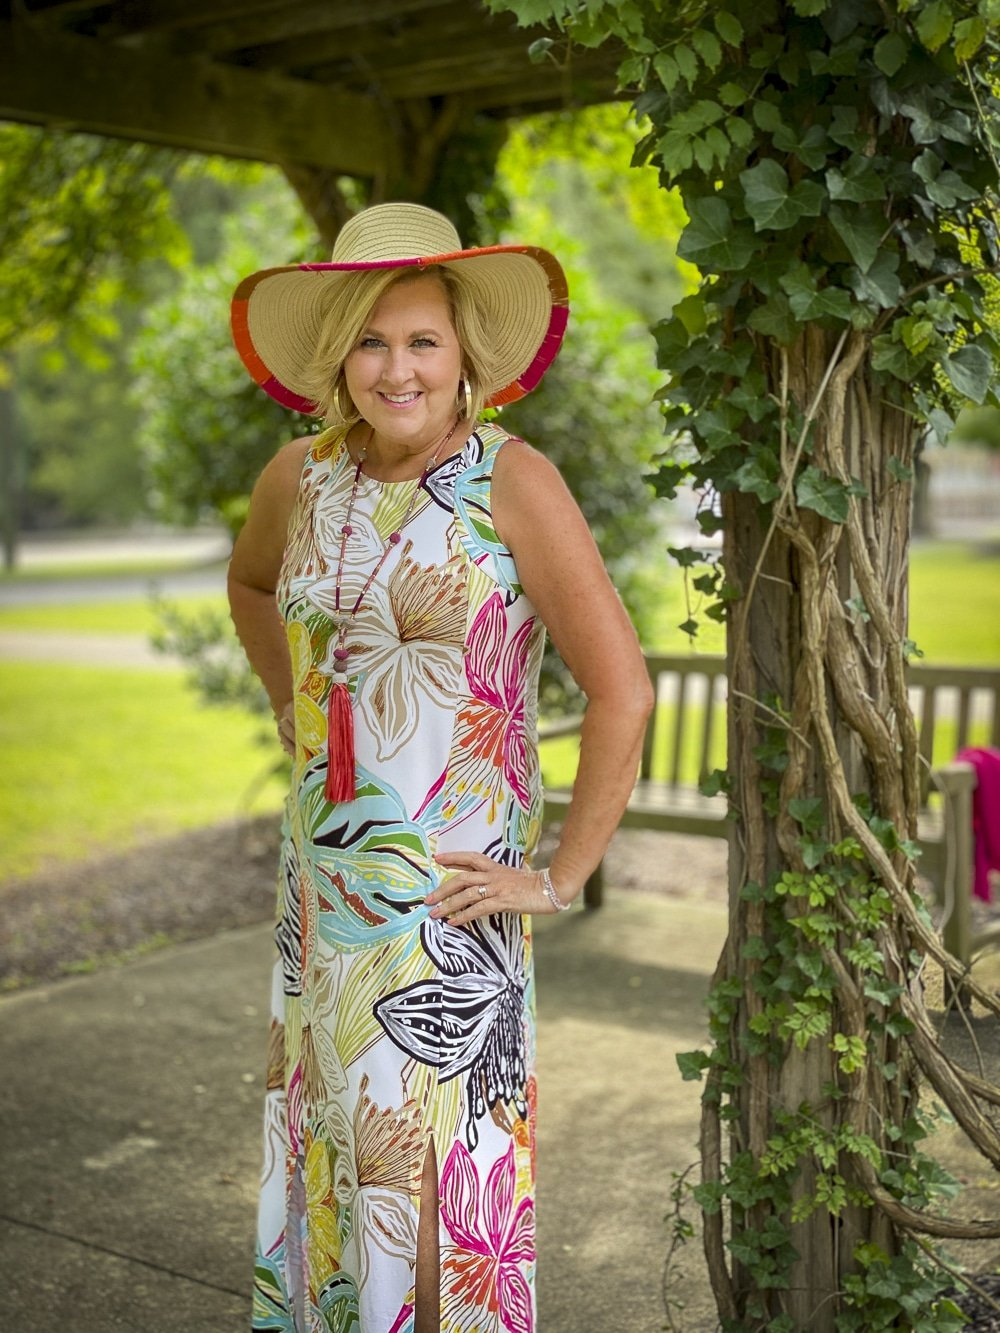 Fashion Blogger 50 Is Not Old is wearing a tropical print sleeveless dress with colorful accessories